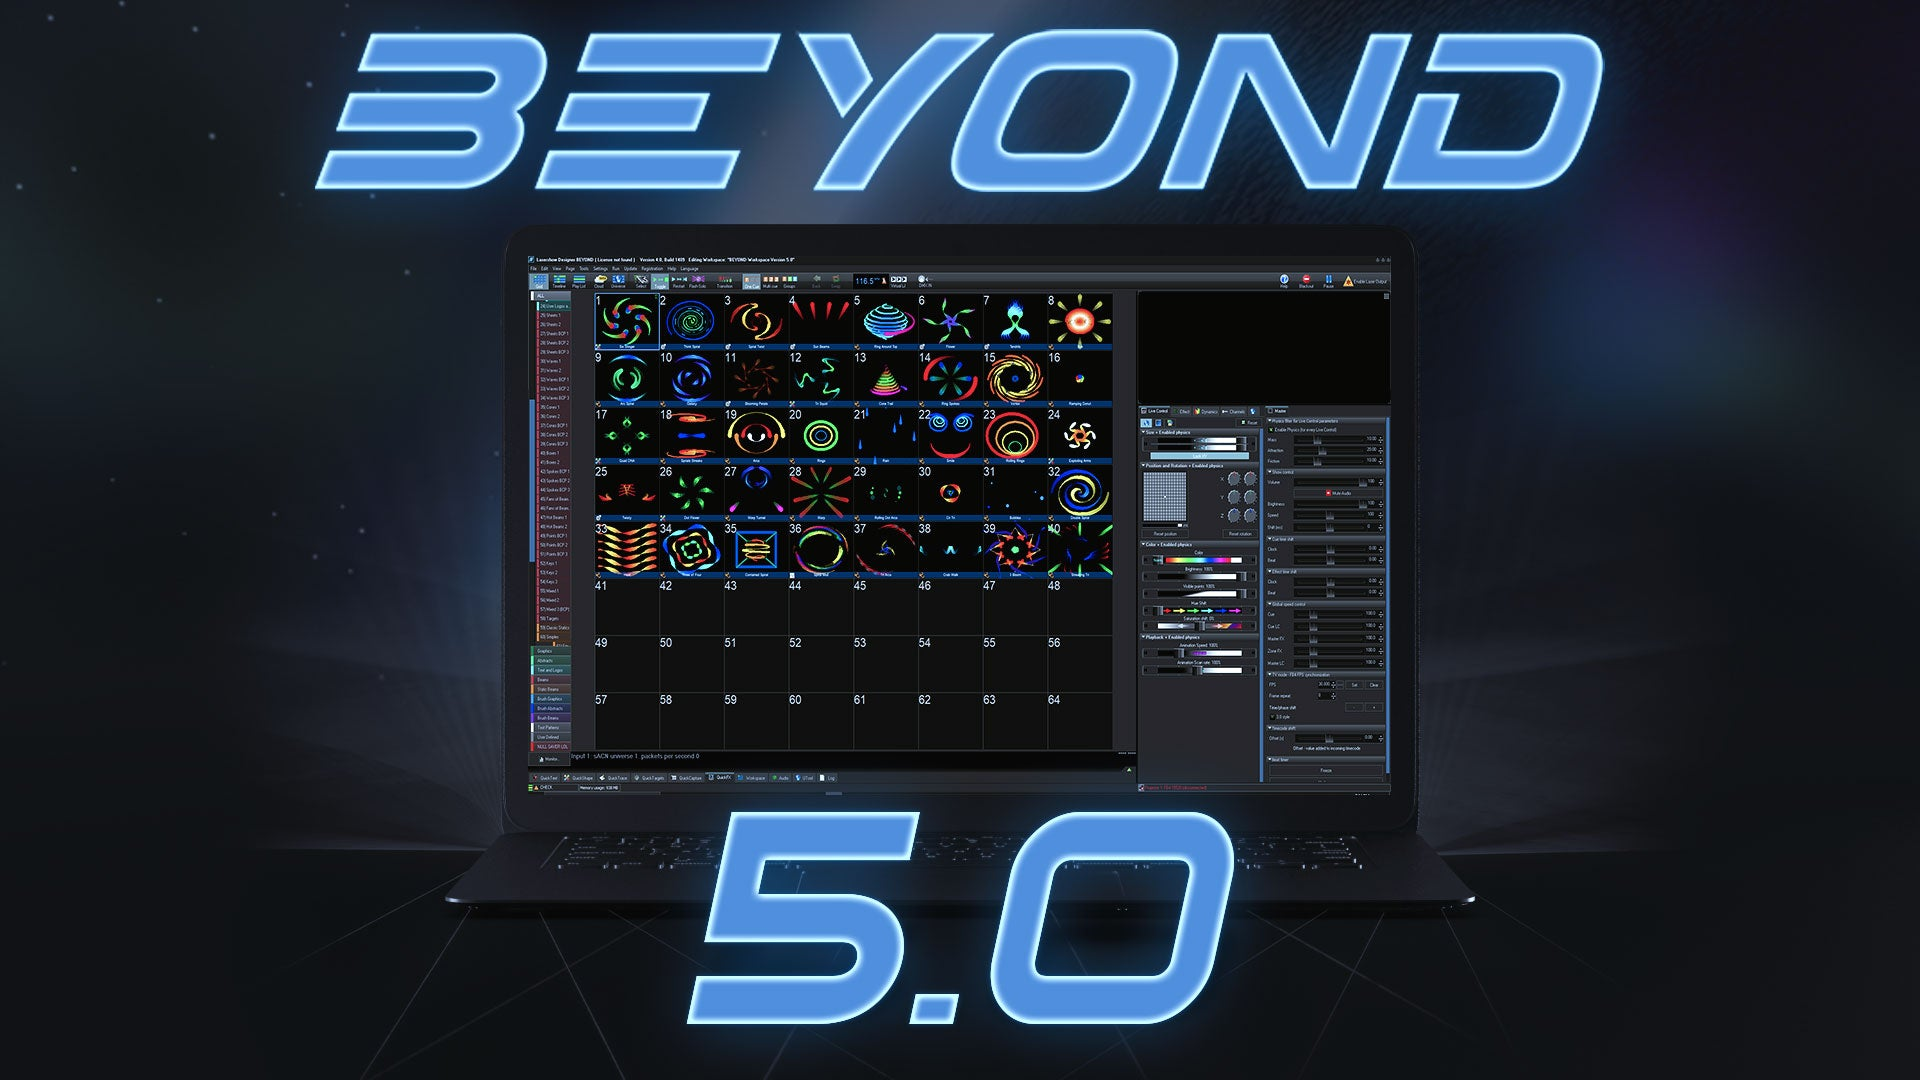 BEYOND 5.0 Overview Banner